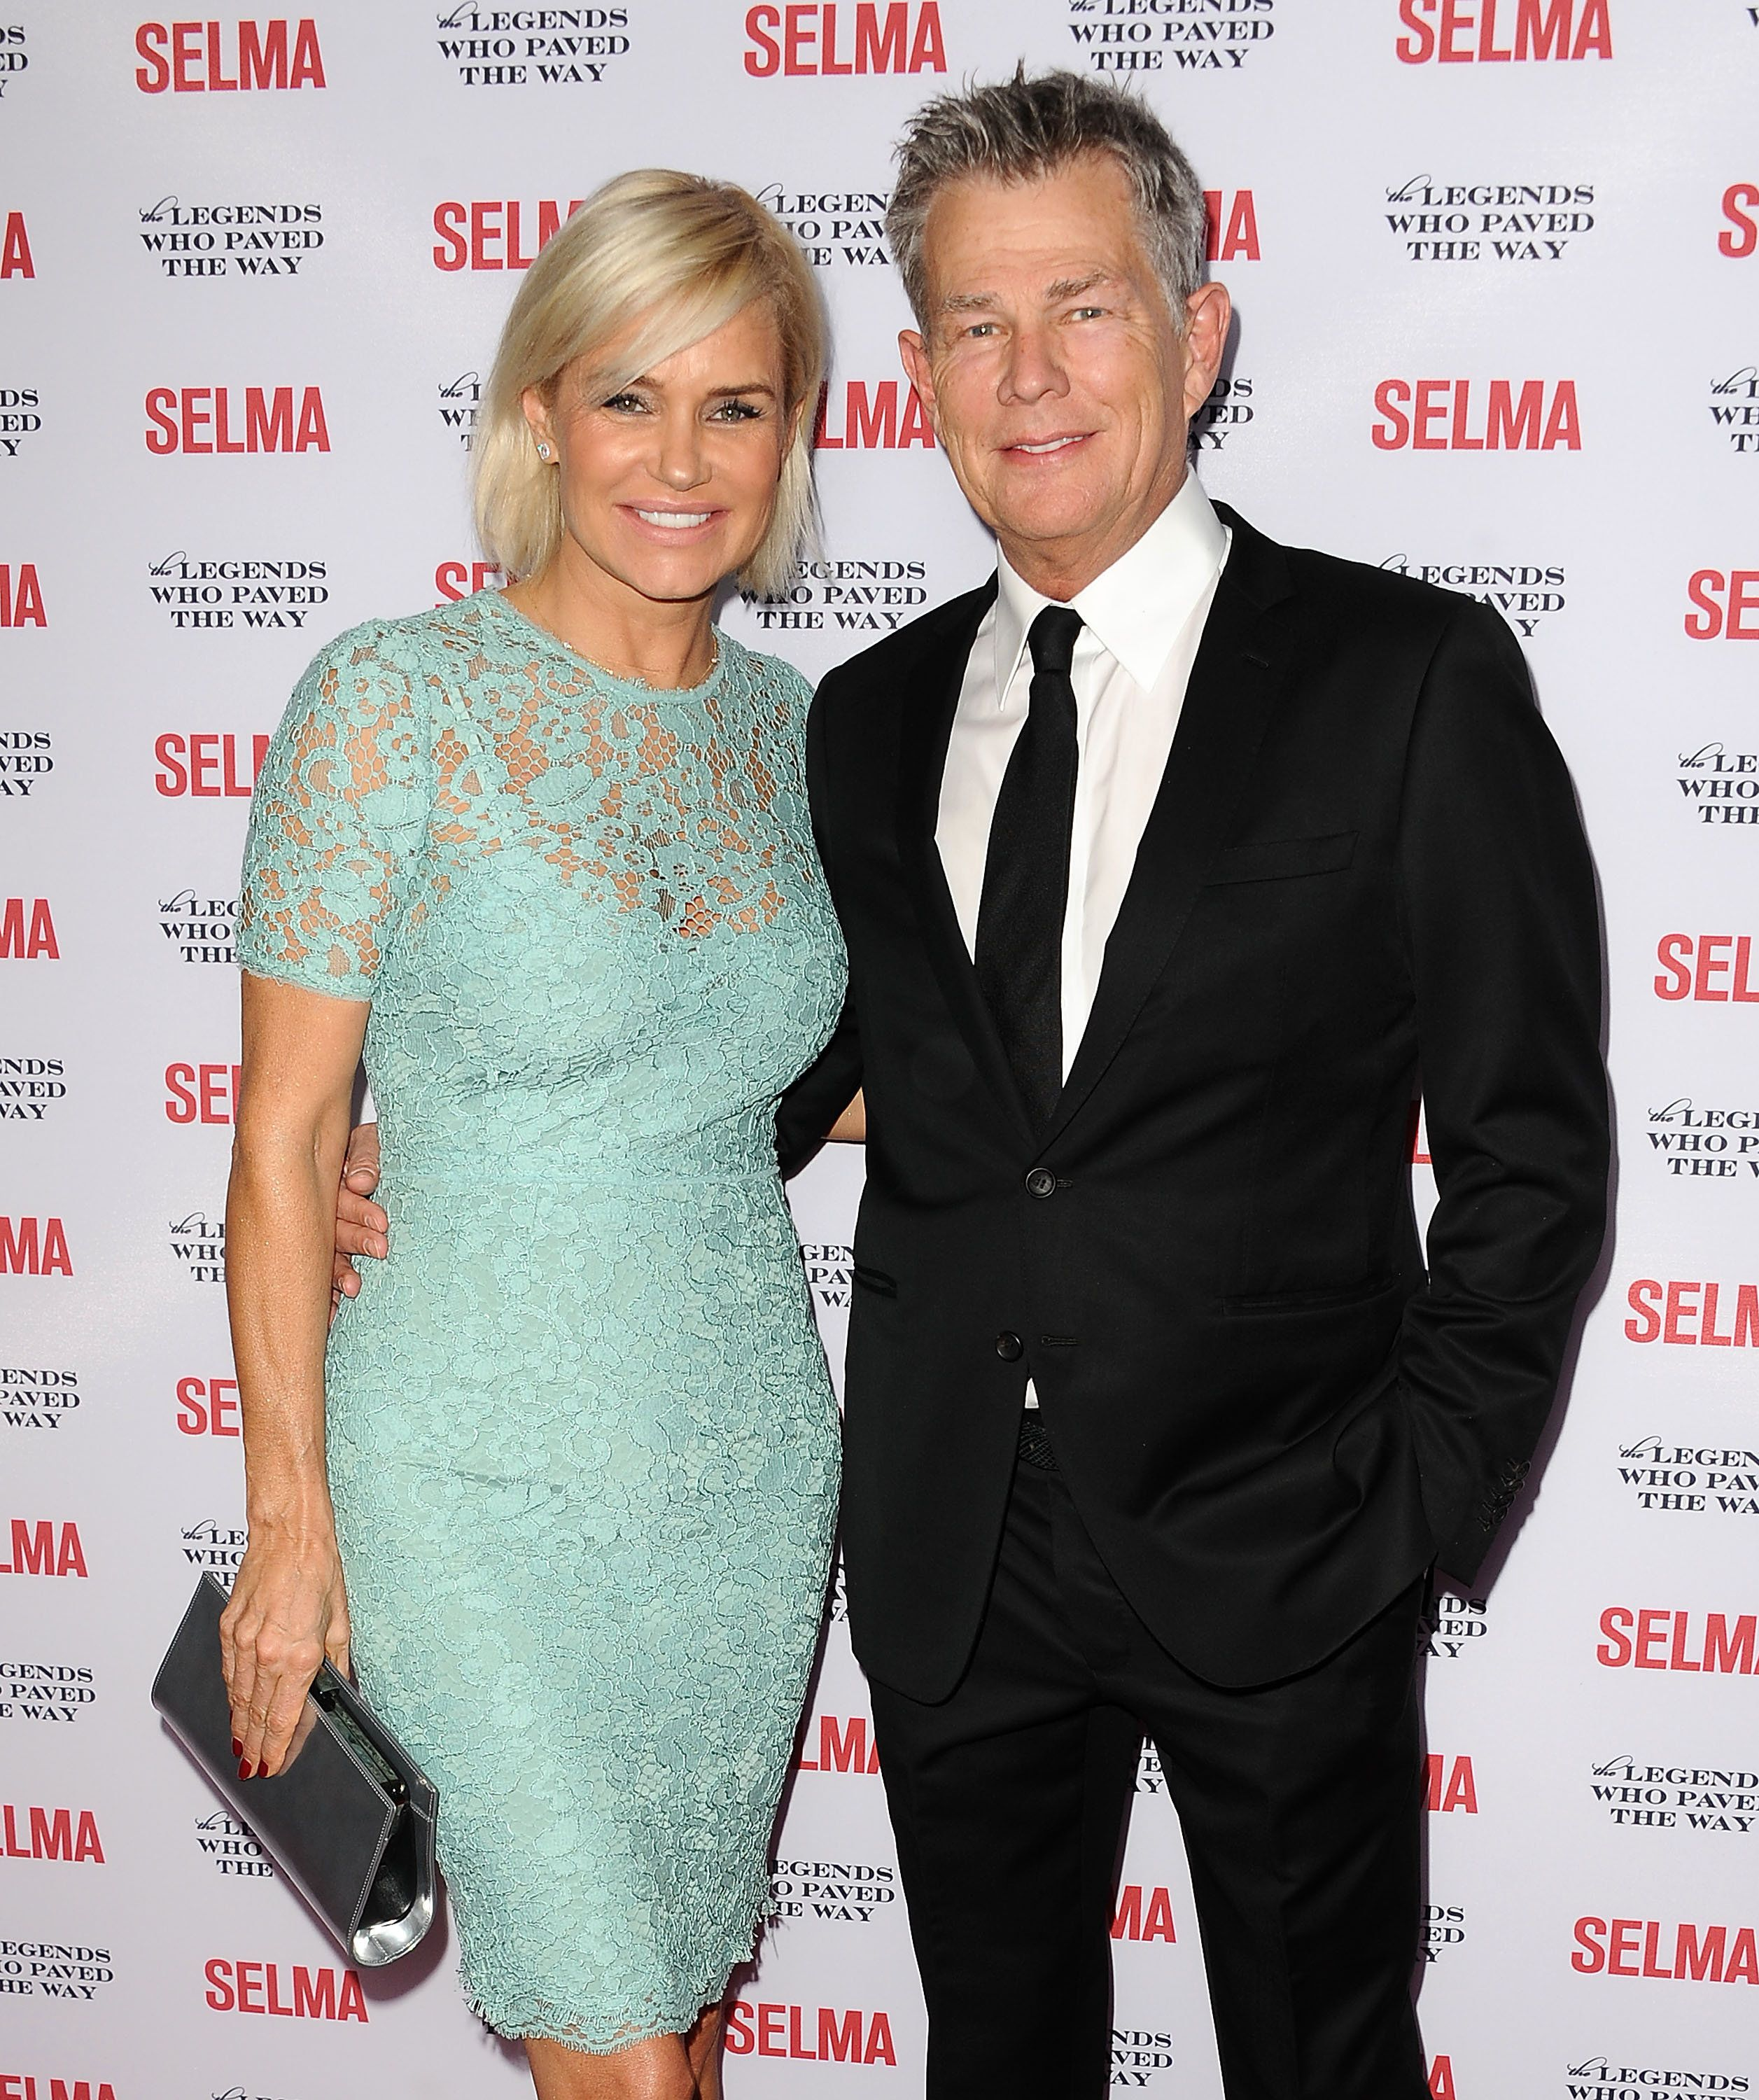 GOLETA, CA - DECEMBER 06:  Yolanda Foster and David Foster attend the 'Selma' and the Legends Who Paved the Way gala at Bacara Resort on December 6, 2014 in Goleta, California.  (Photo by Jason LaVeris/FilmMagic)